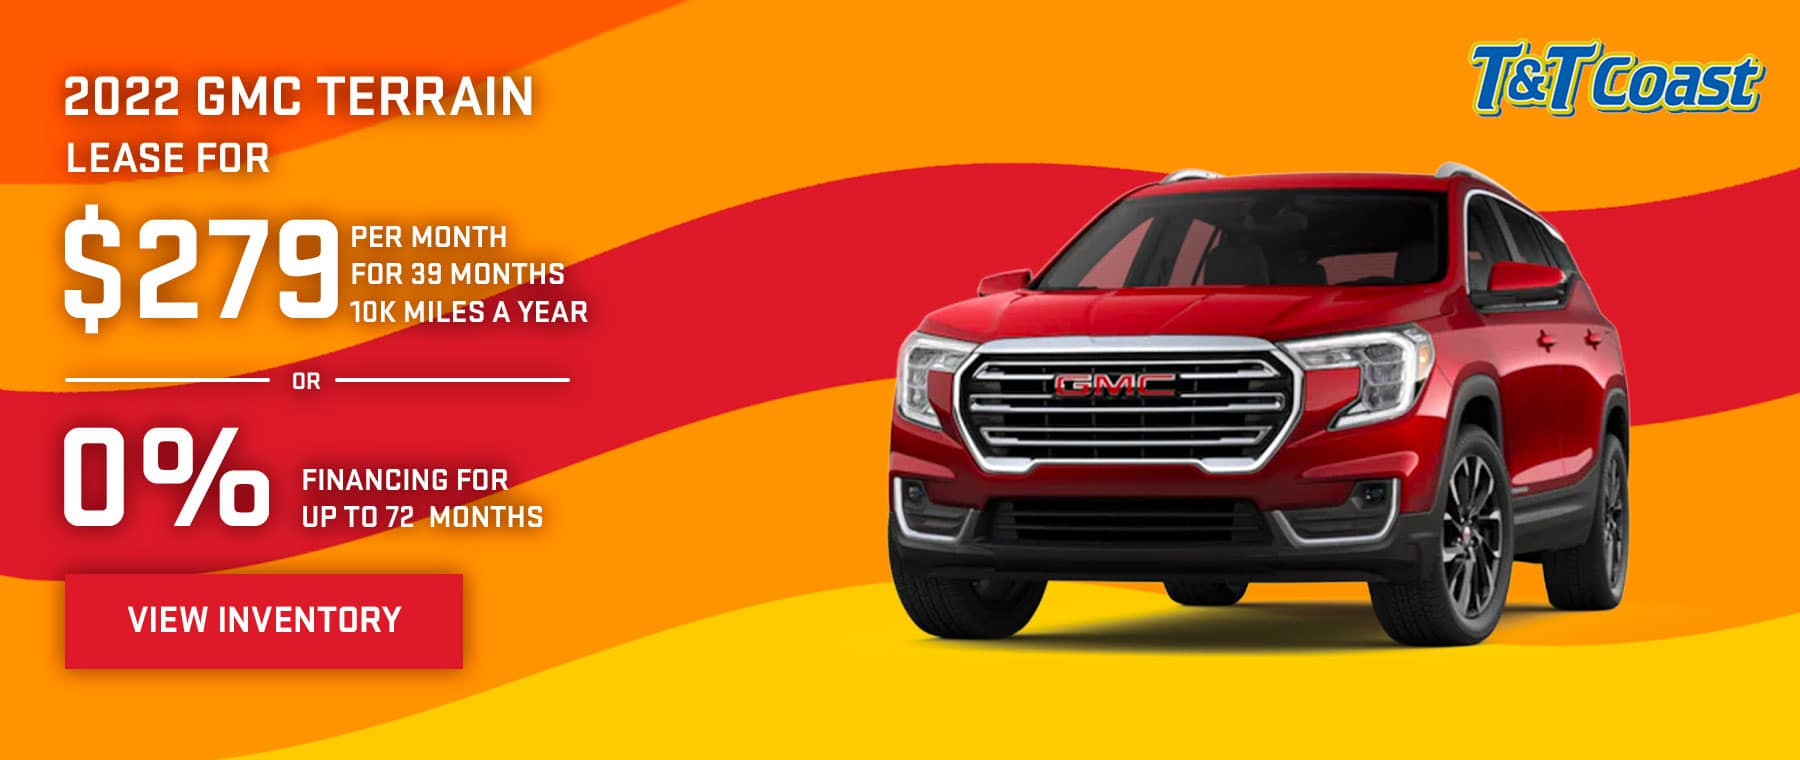 2022 GMC TERRAIN $279 a month for 39 months OR 0% financing for up to 72 months